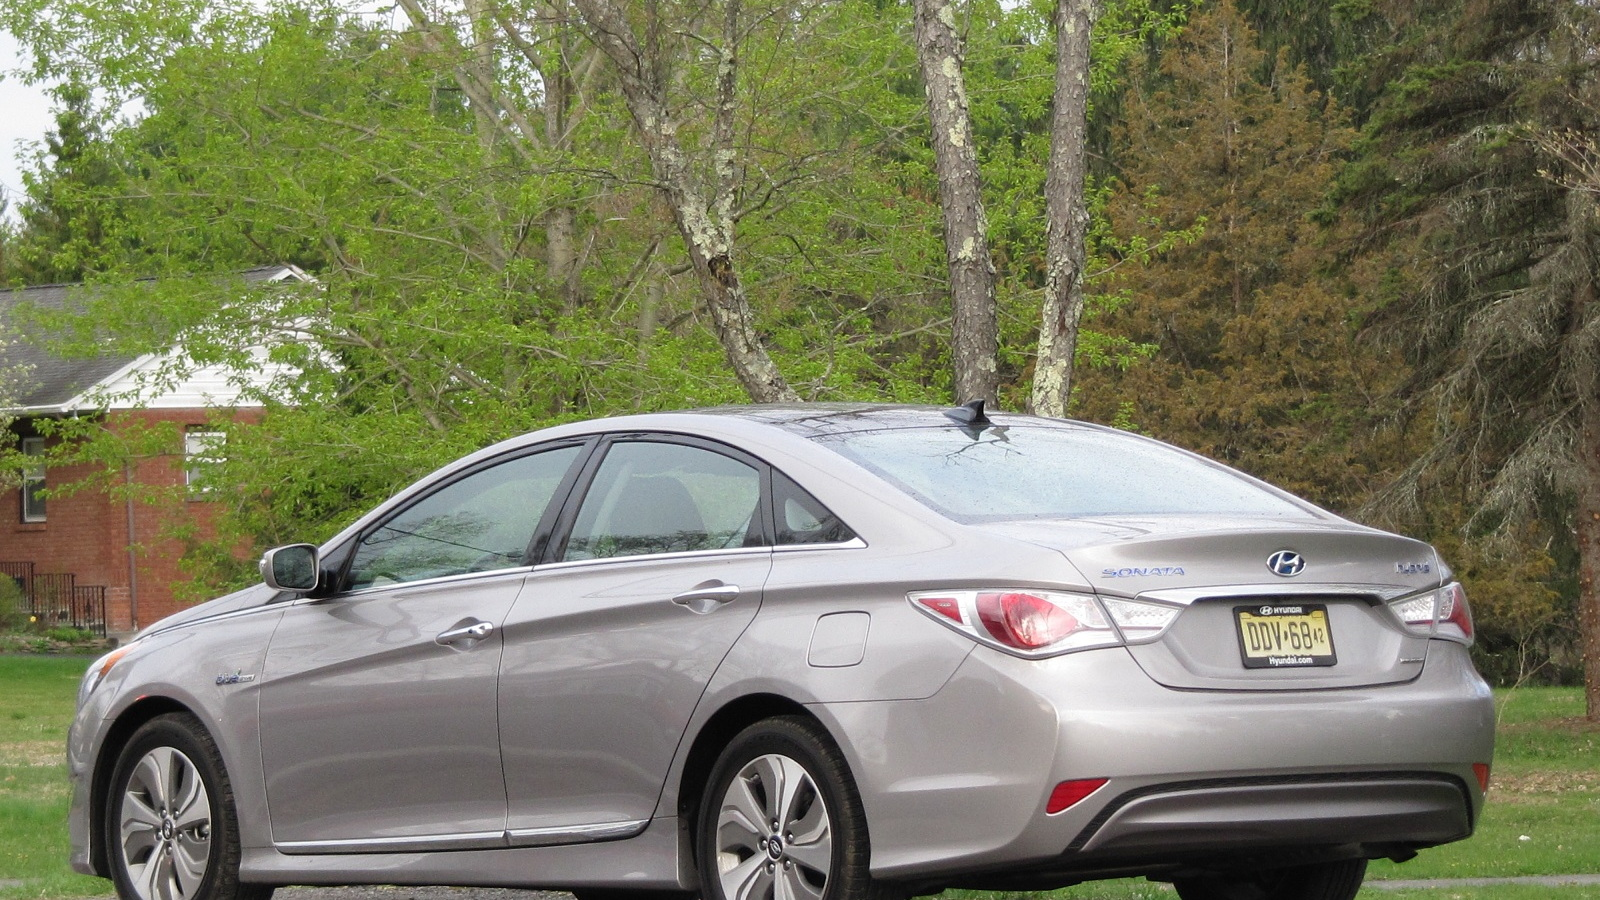 2013 Hyundai Sonata Hybrid, Catskill Mountains, April 2013